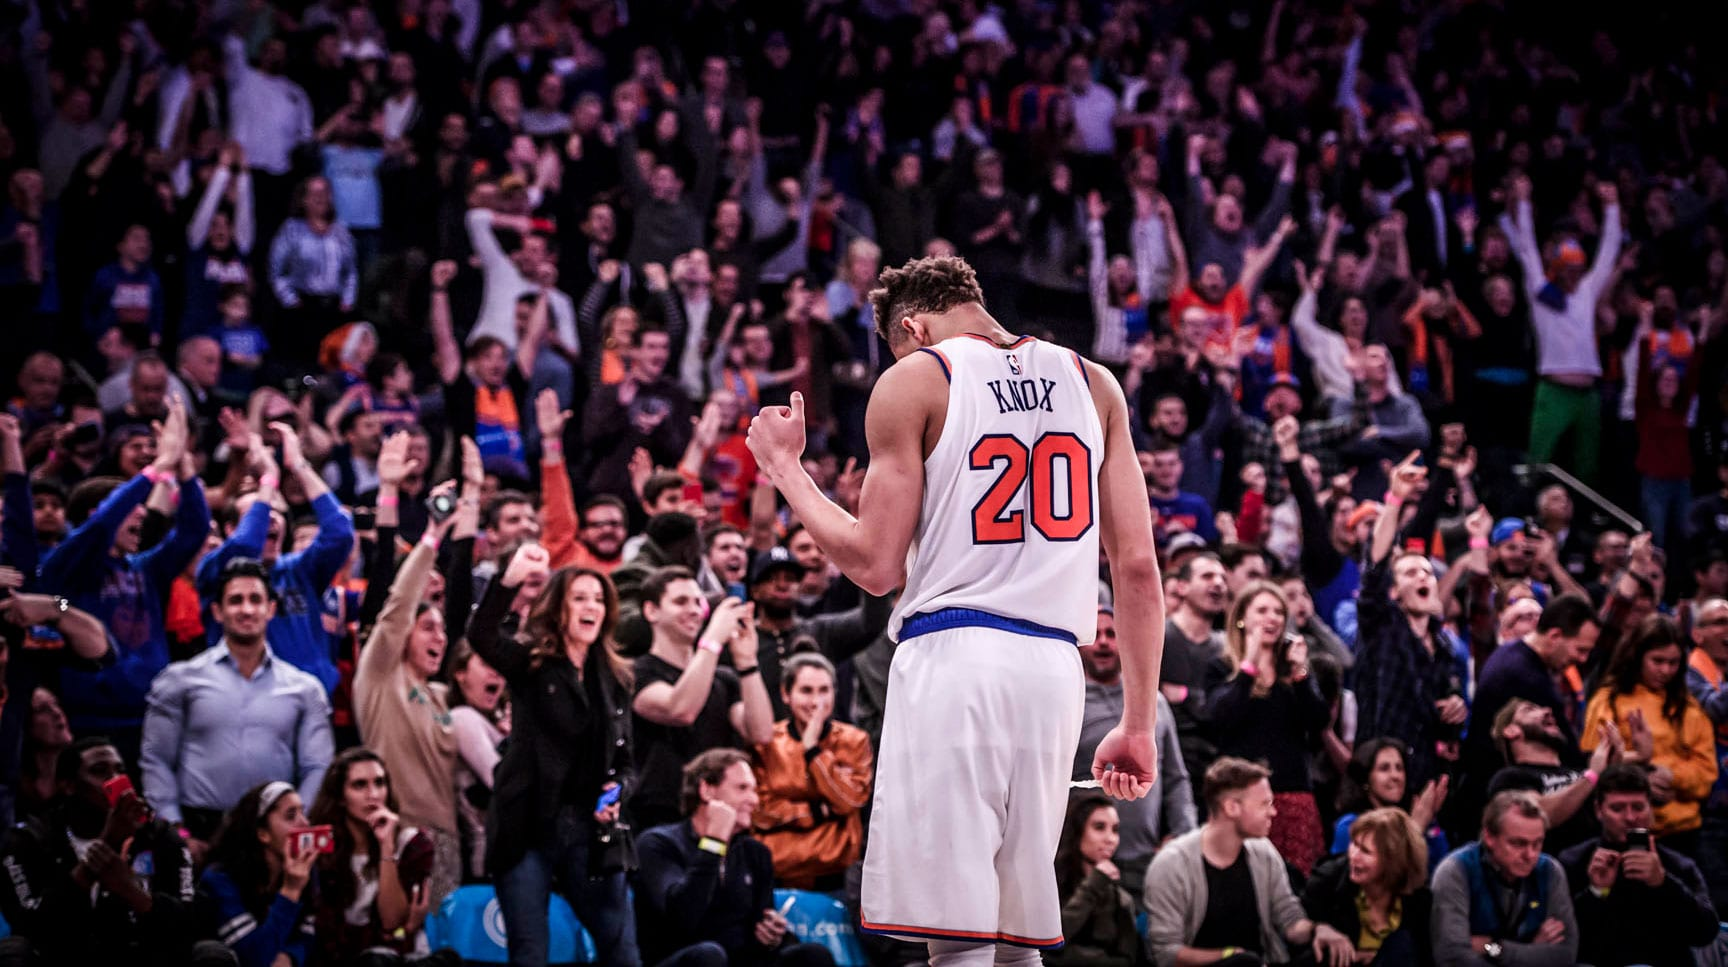 NEW YORK KNICKS SOCIAL MEDIA GIVEAWAY